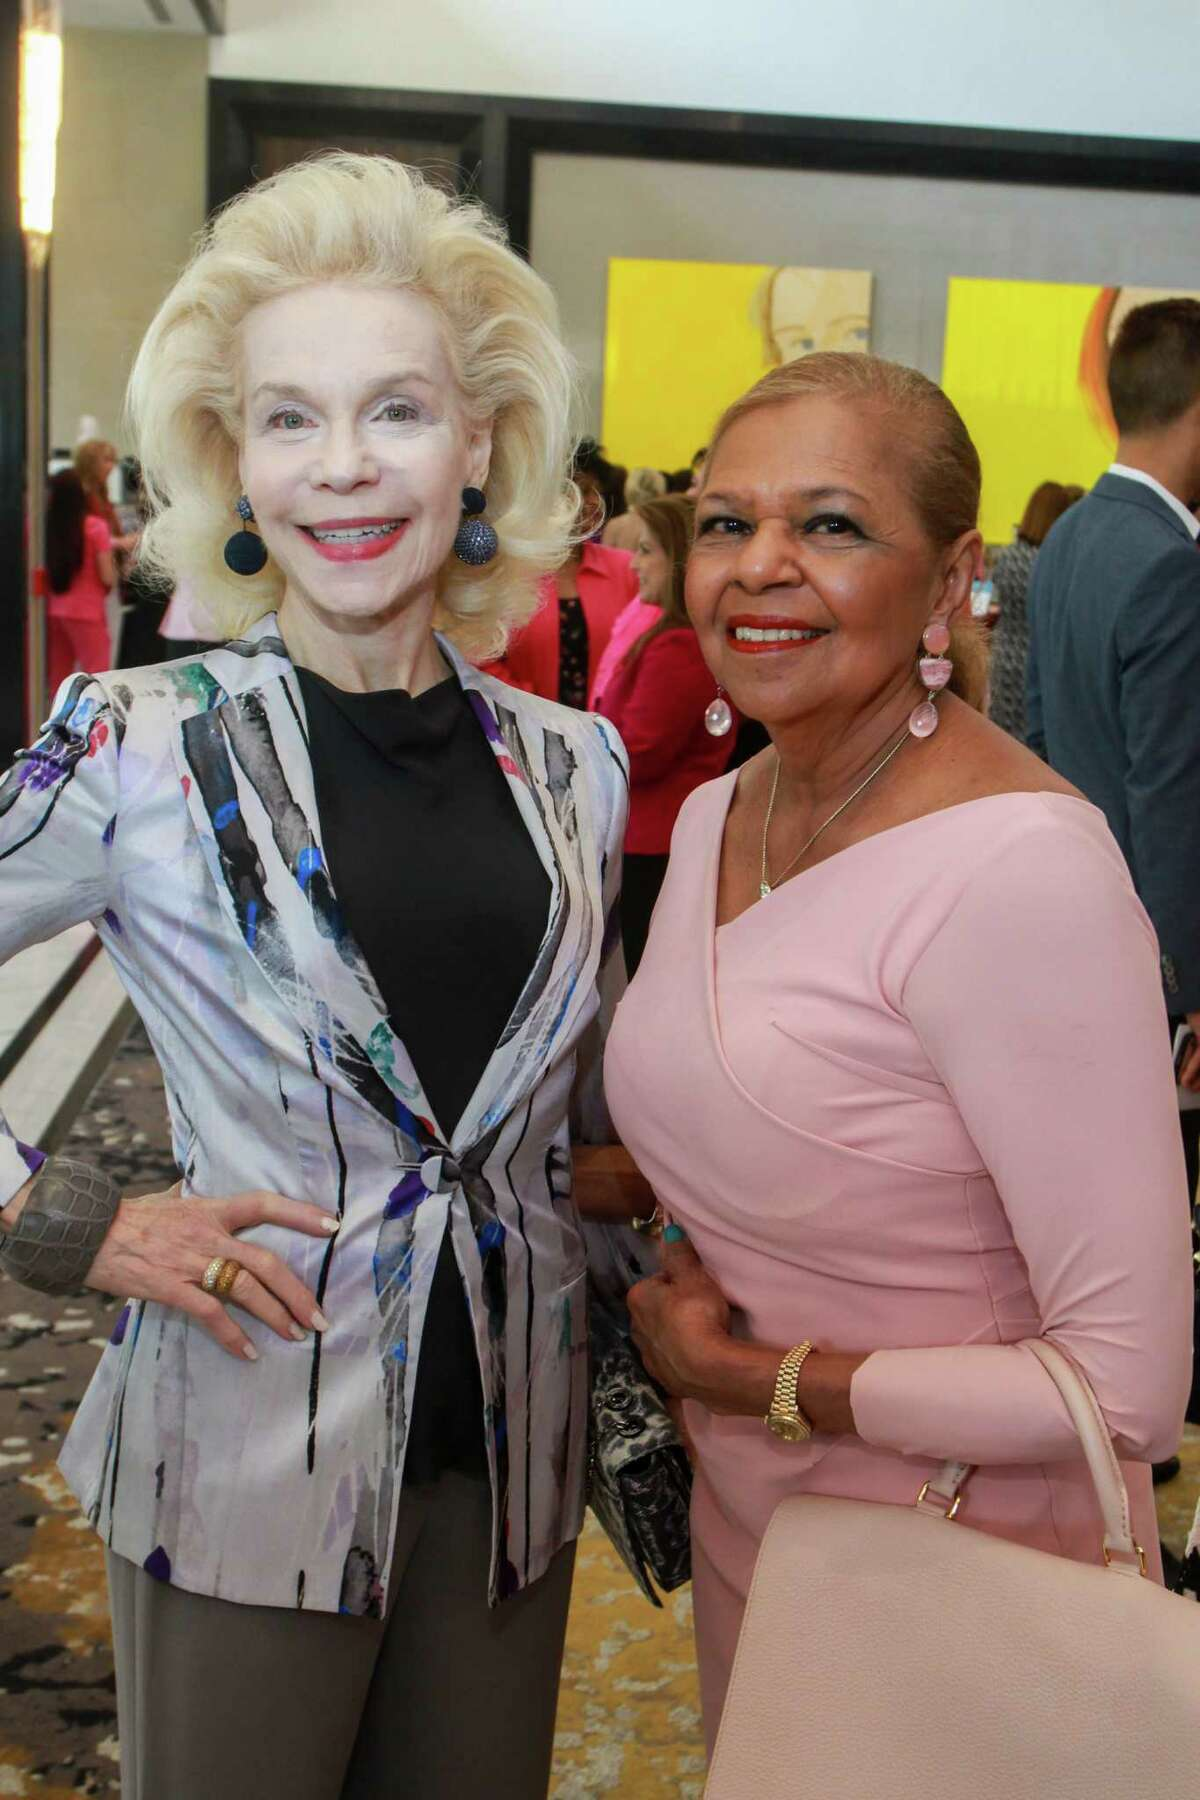 Lynn Wyatt, left, and Dr. Yvonne Cormier at the 10th annual Razzle Dazzle luncheon at the Post Oak Hotel at Uptown on October 10, 2019.